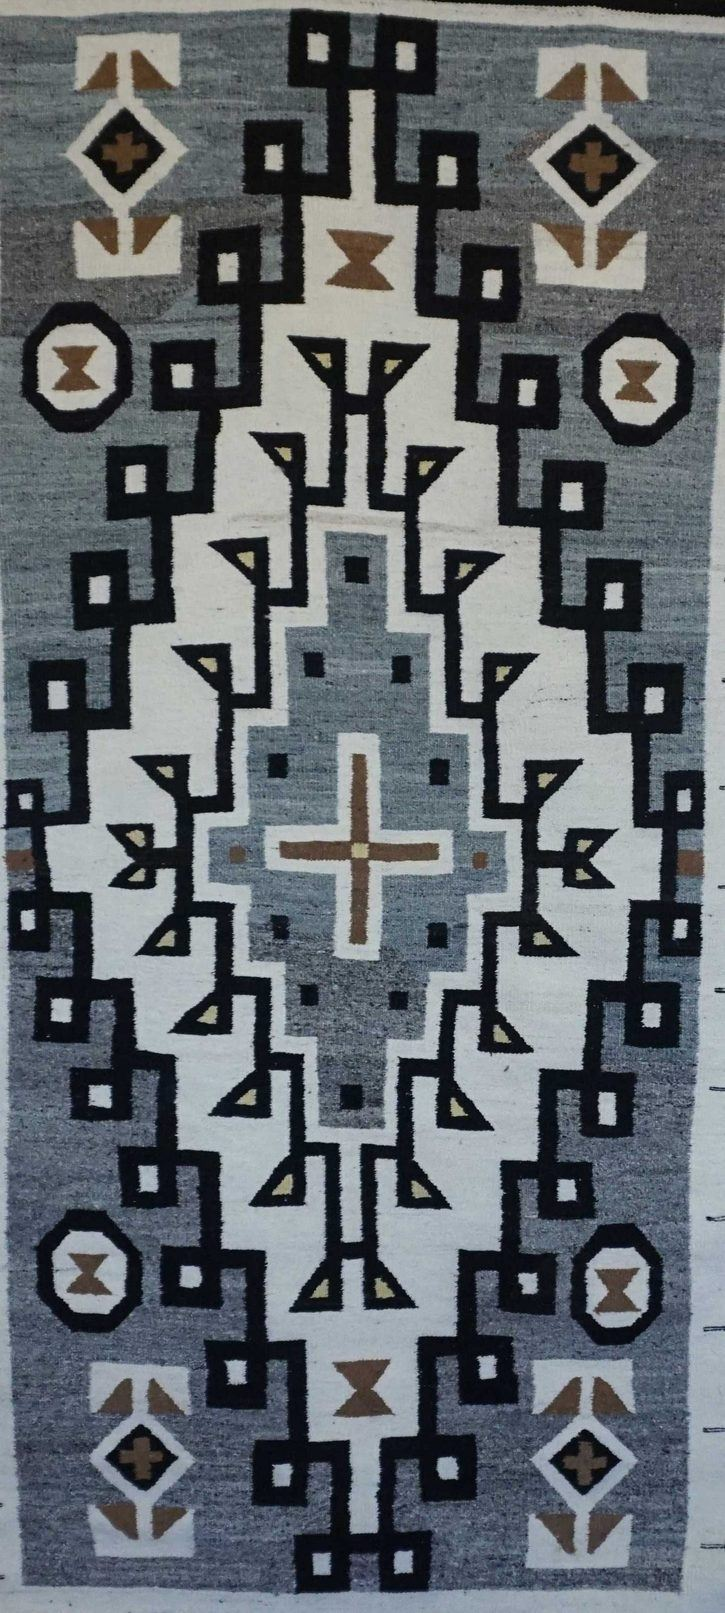 Navajo Rugs for Sale Company Antique Large Diamond JB Moore Crystal Trading Post Navajo Rug Weaving Circa 1930 for Sale NRFSC0860 Image 002